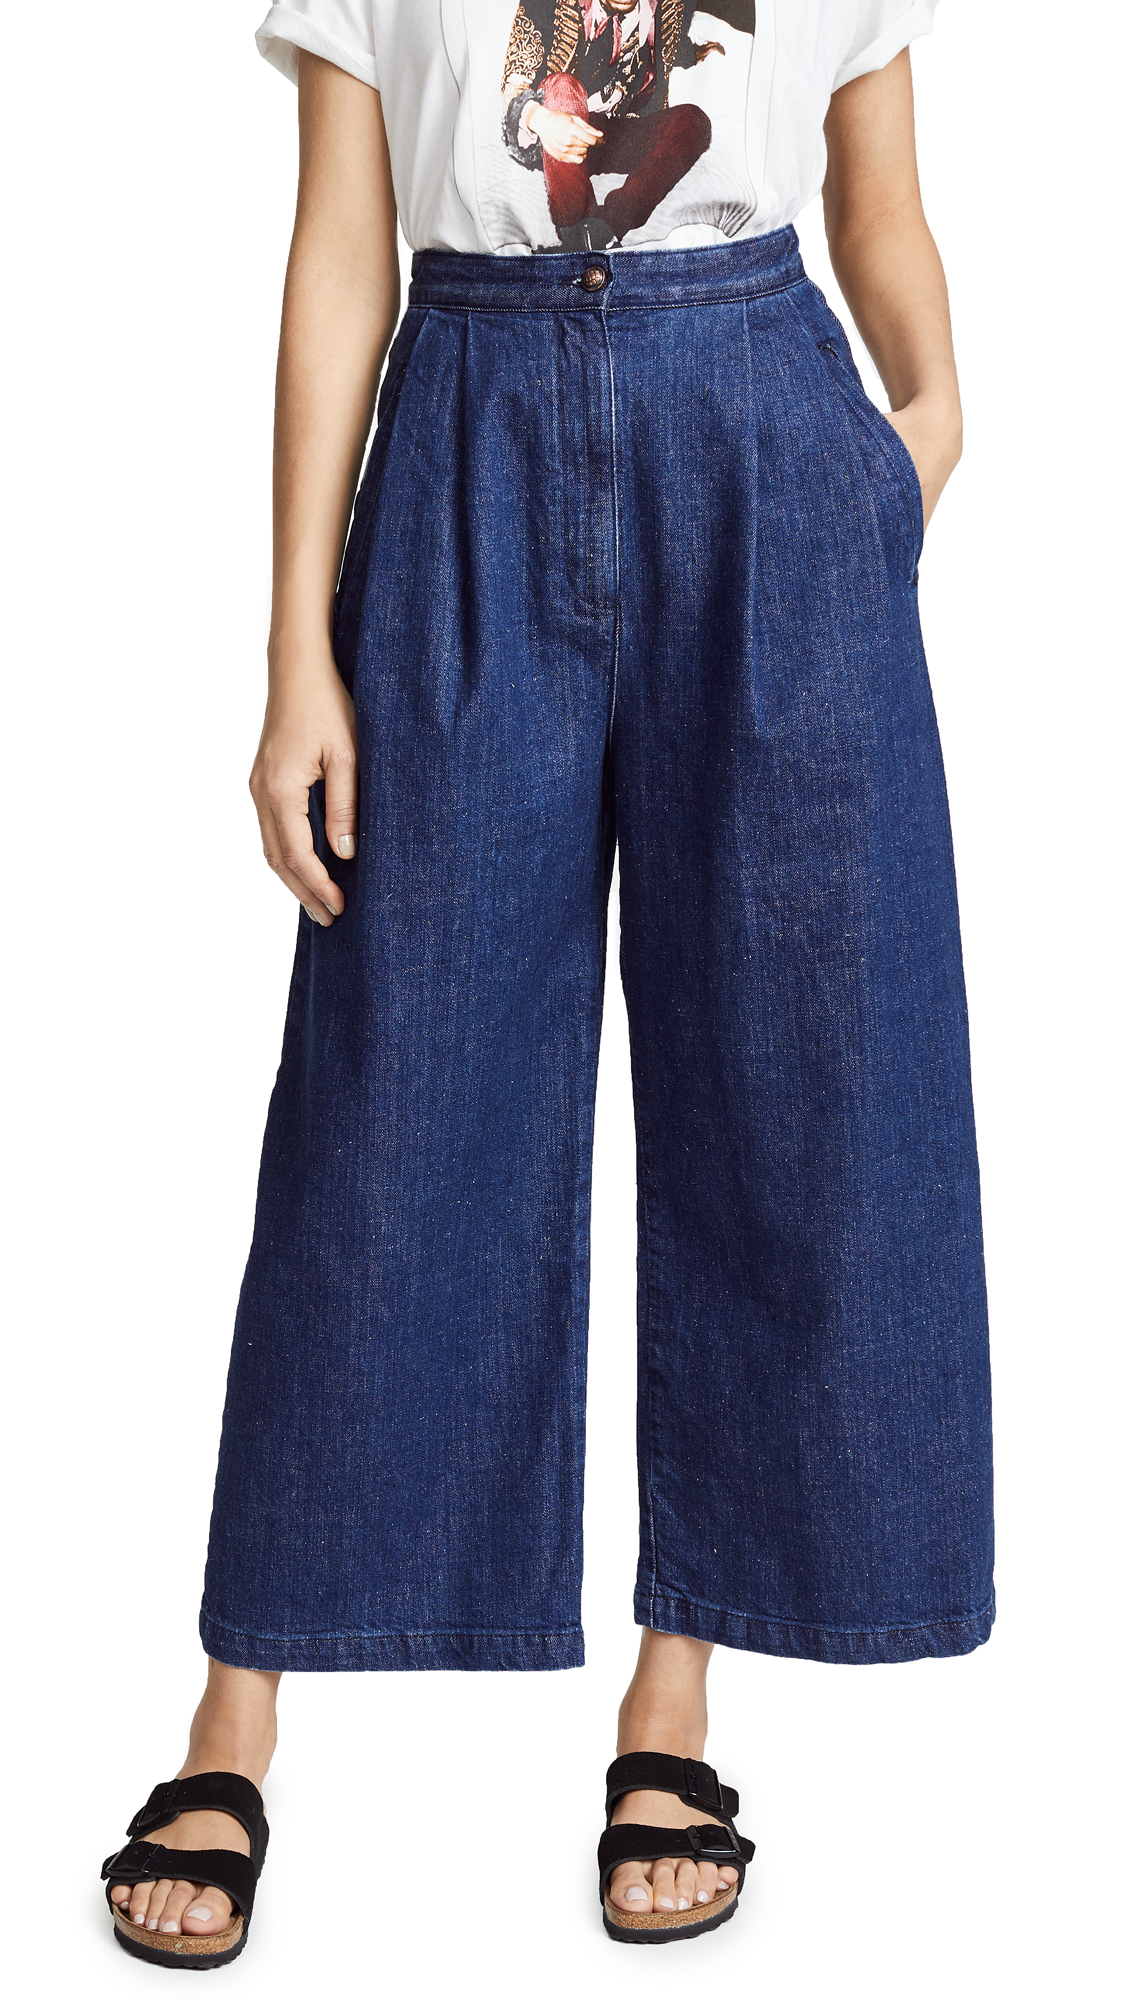 LUCY HIGH RISE BAGGY TROUSER JEANS